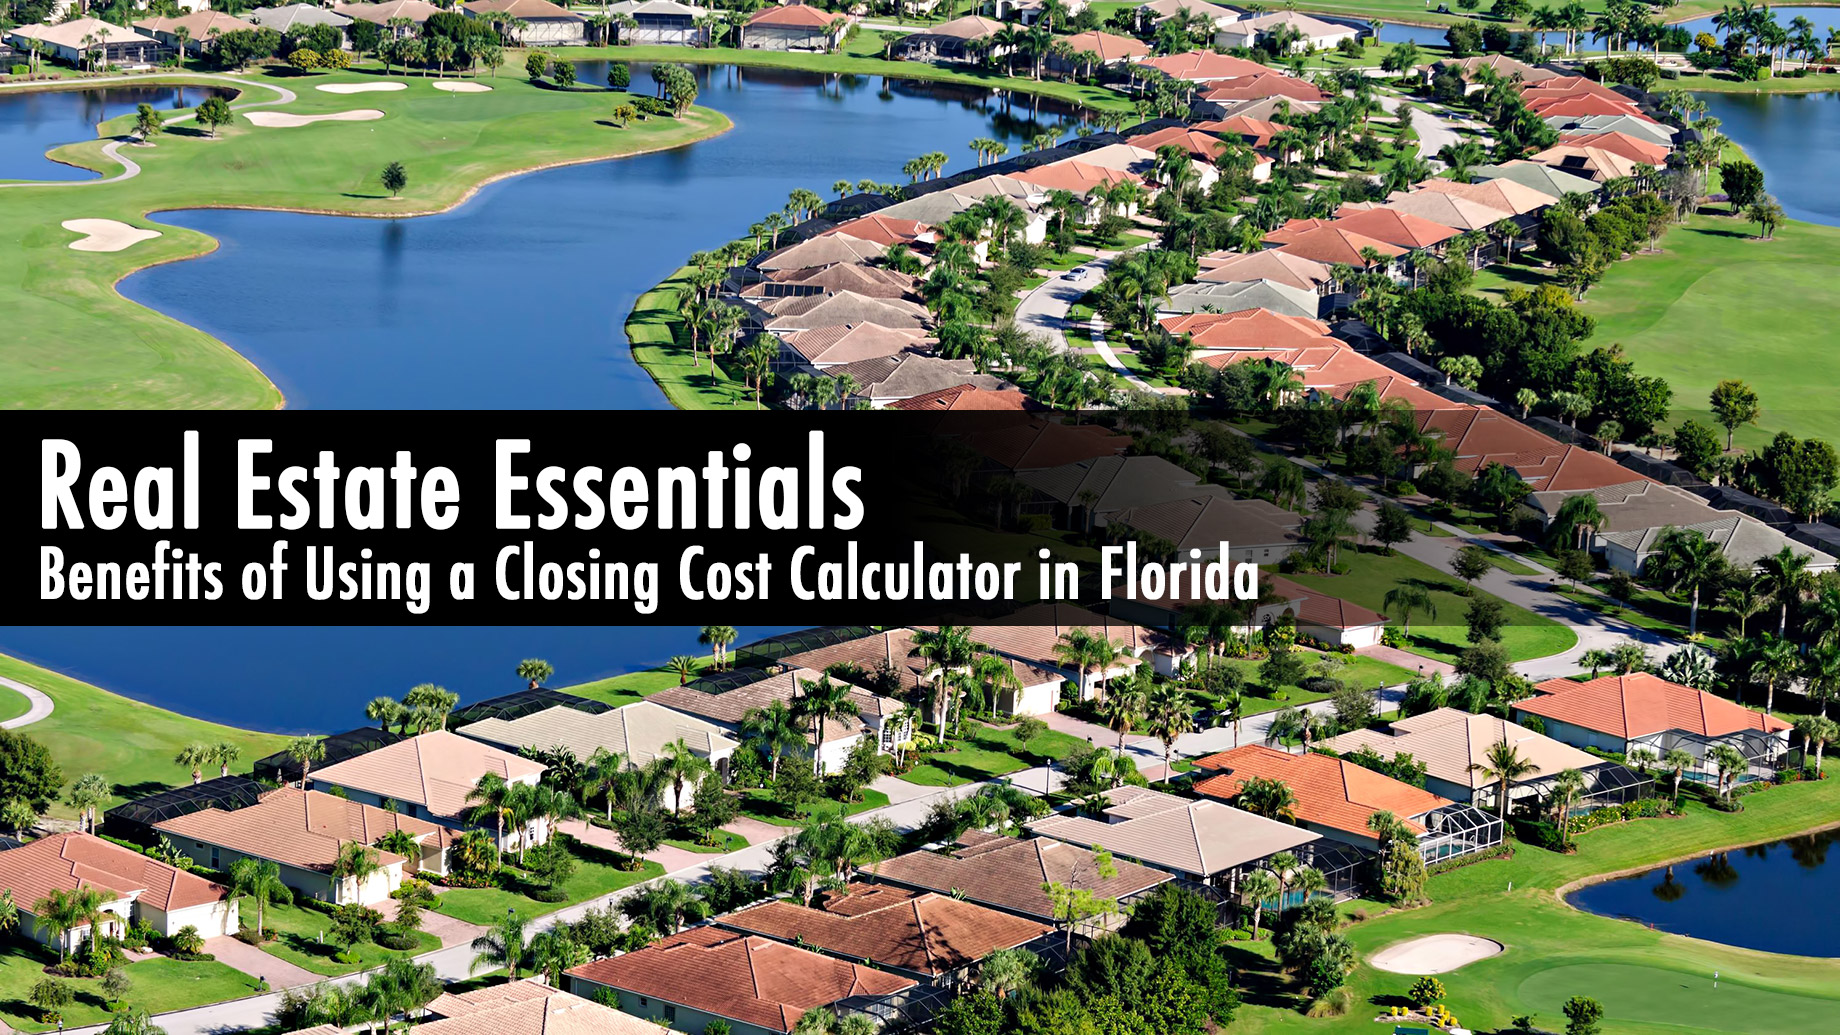 Real Estate Essentials - Benefits of Using a Closing Cost Calculator in Florida